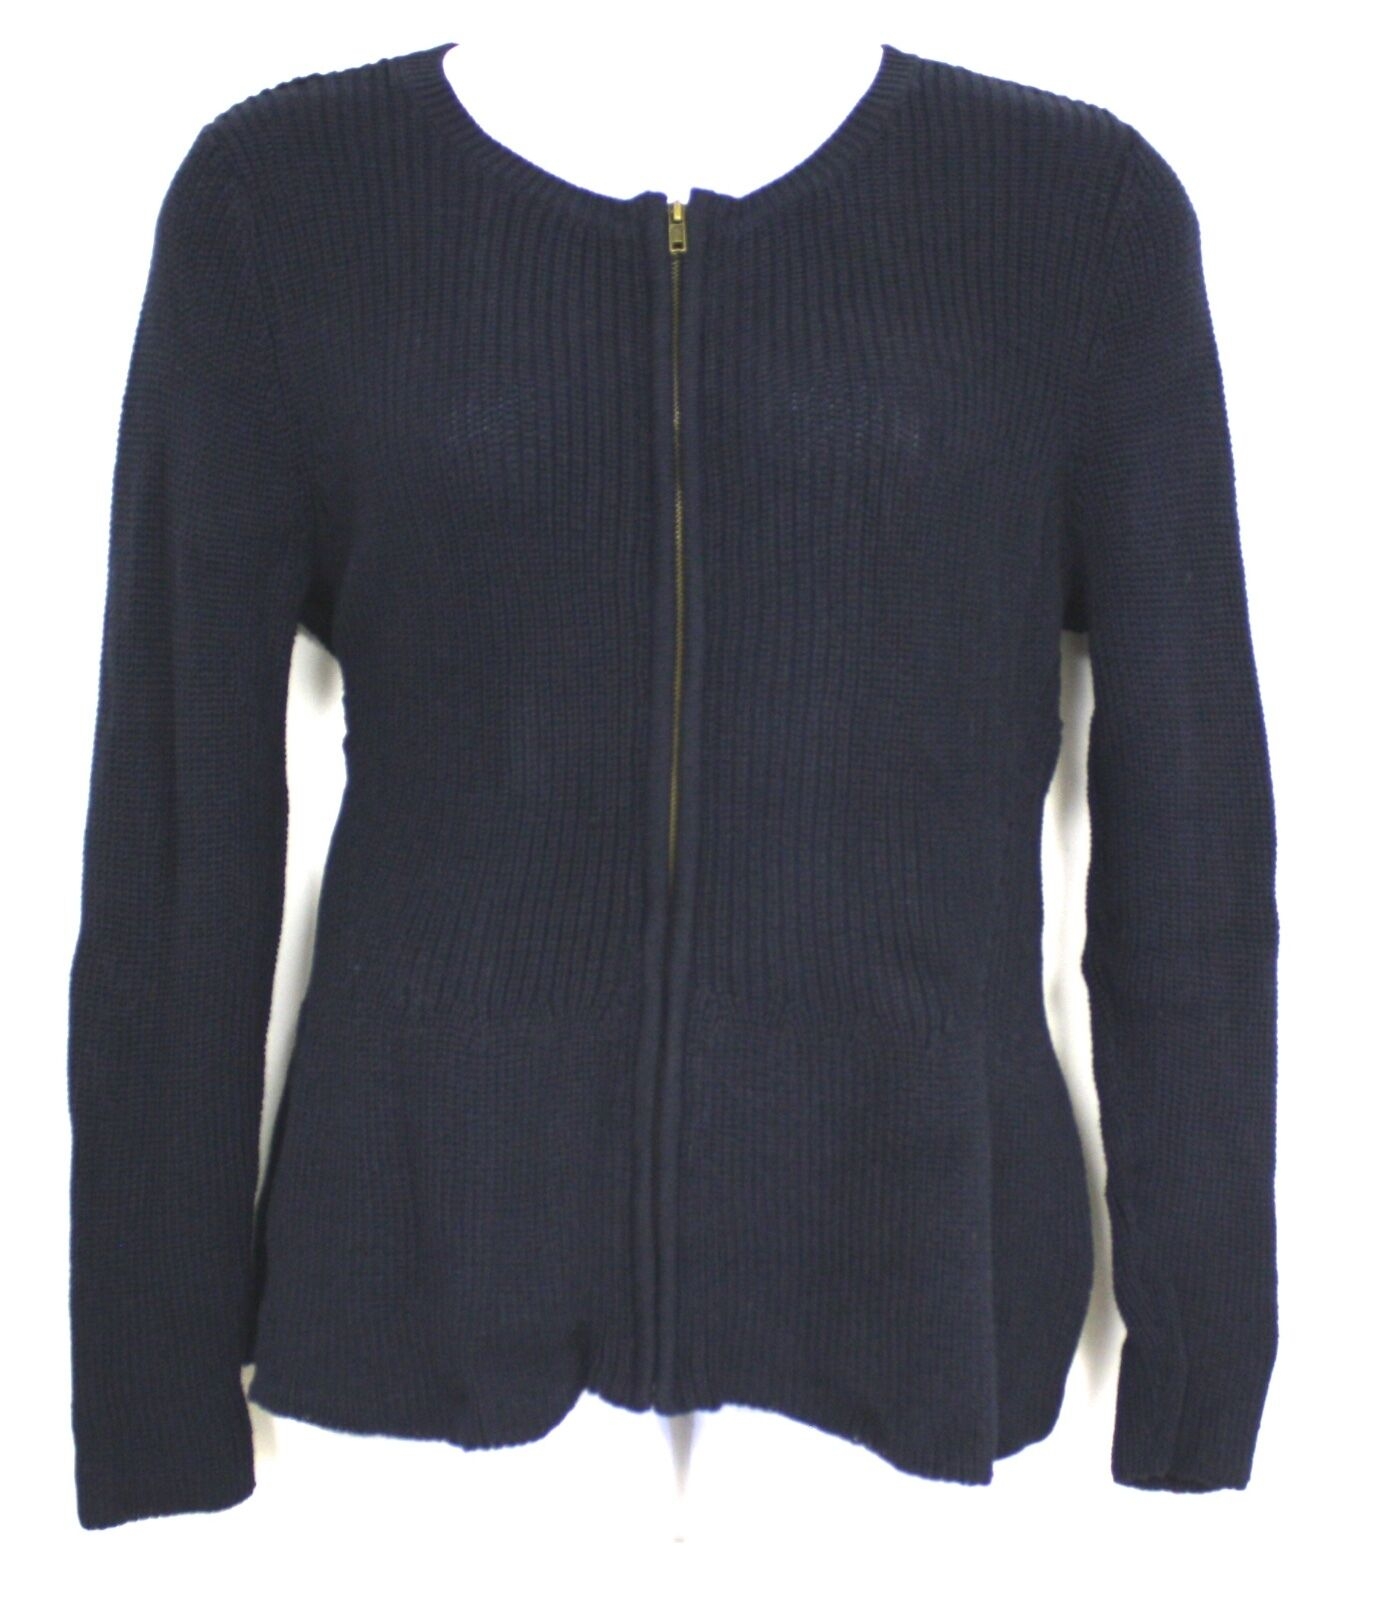 Verve Ami Navy Blue Full Zip Cardigan Sweater NWTS Cotton Acrylic ...